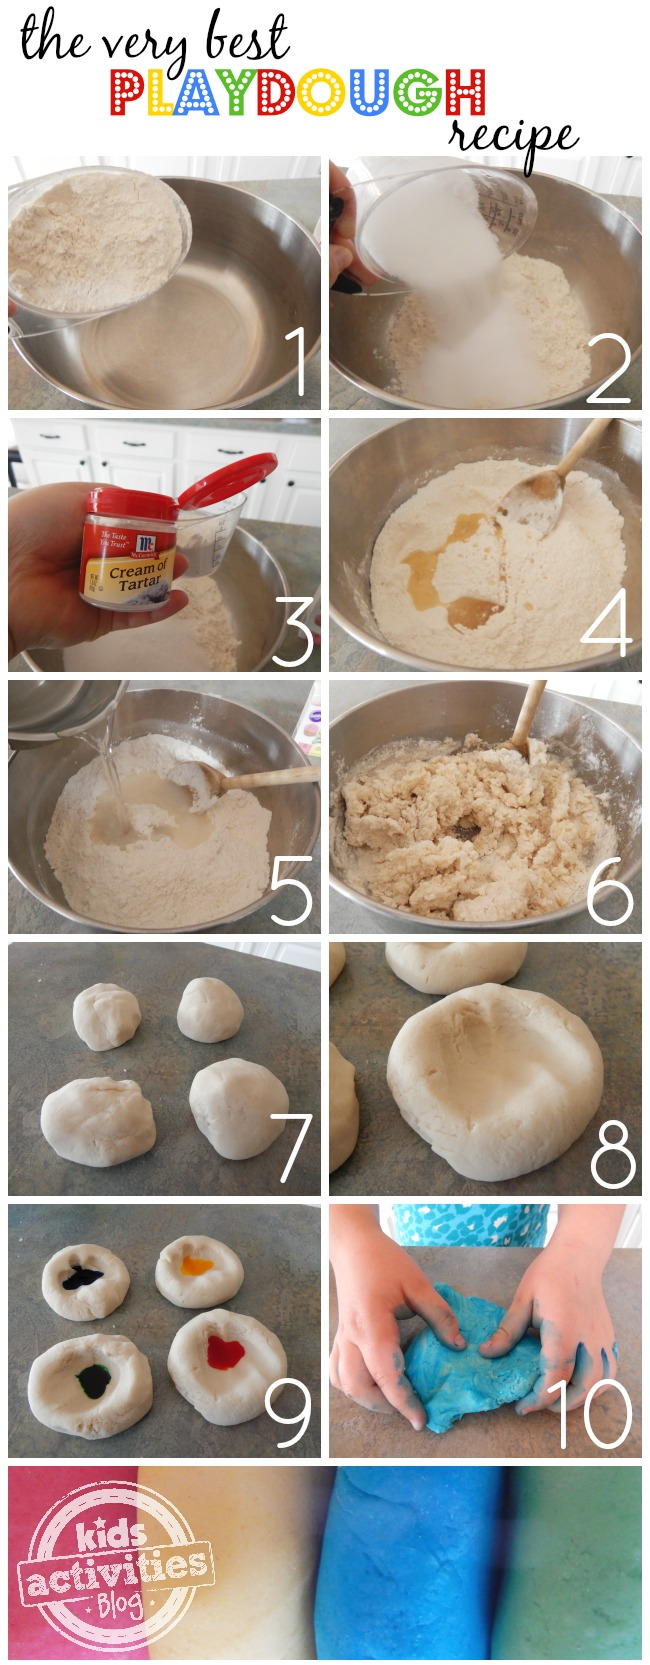 How to make playdough by adding flour in a metal bowl, salt, cream of tar tar, water, oil, mix and form! Add food coloring gel to make red, yellow, blue, and green homemade playdough.